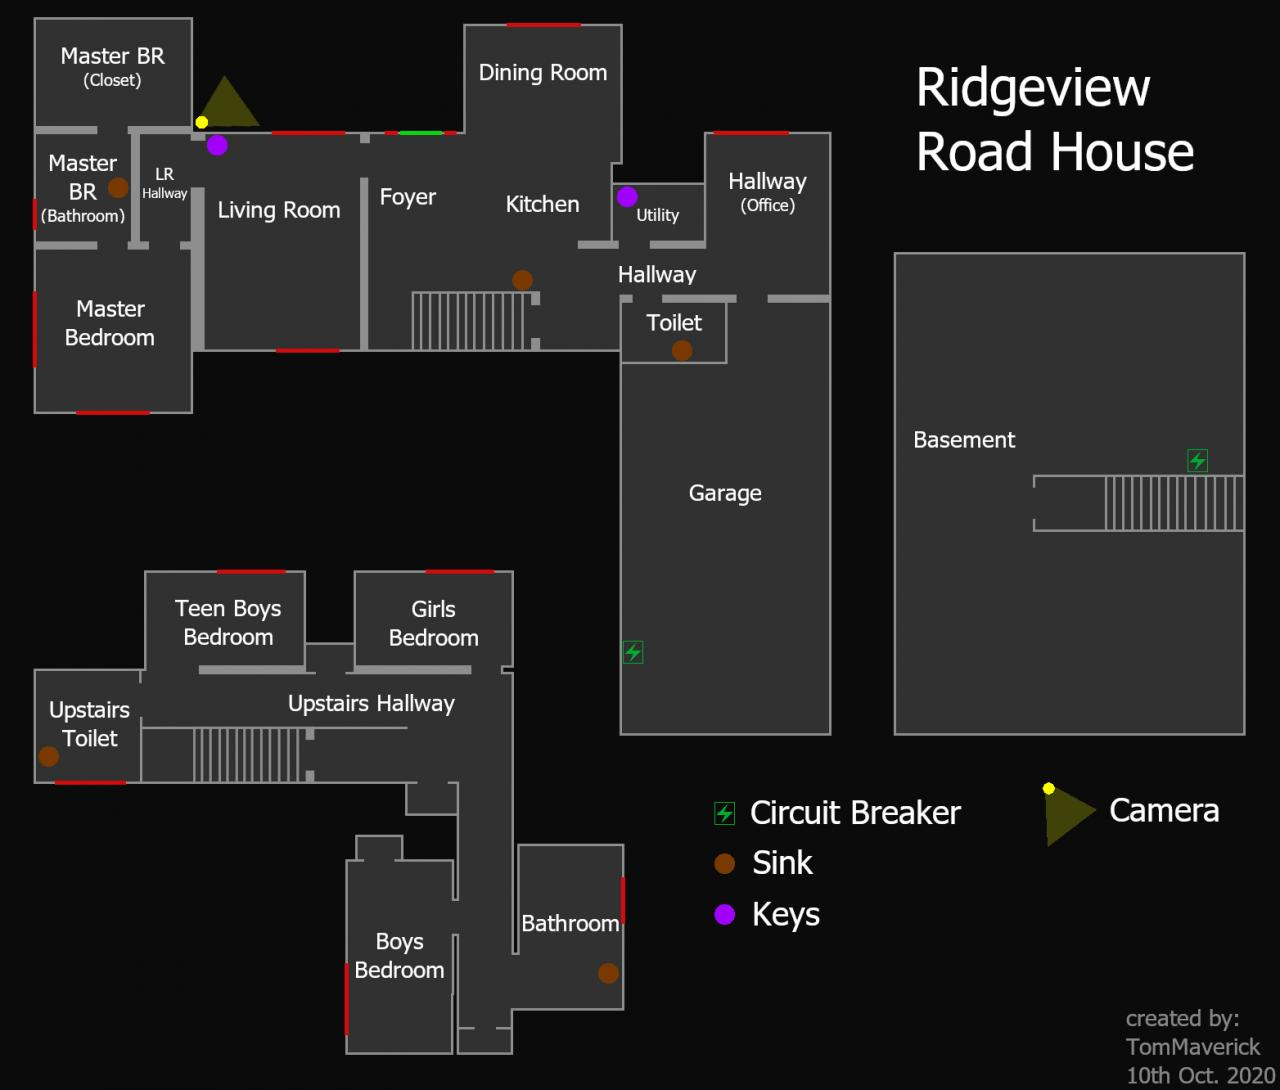 Phasmophobia Ridgeview Road House Map